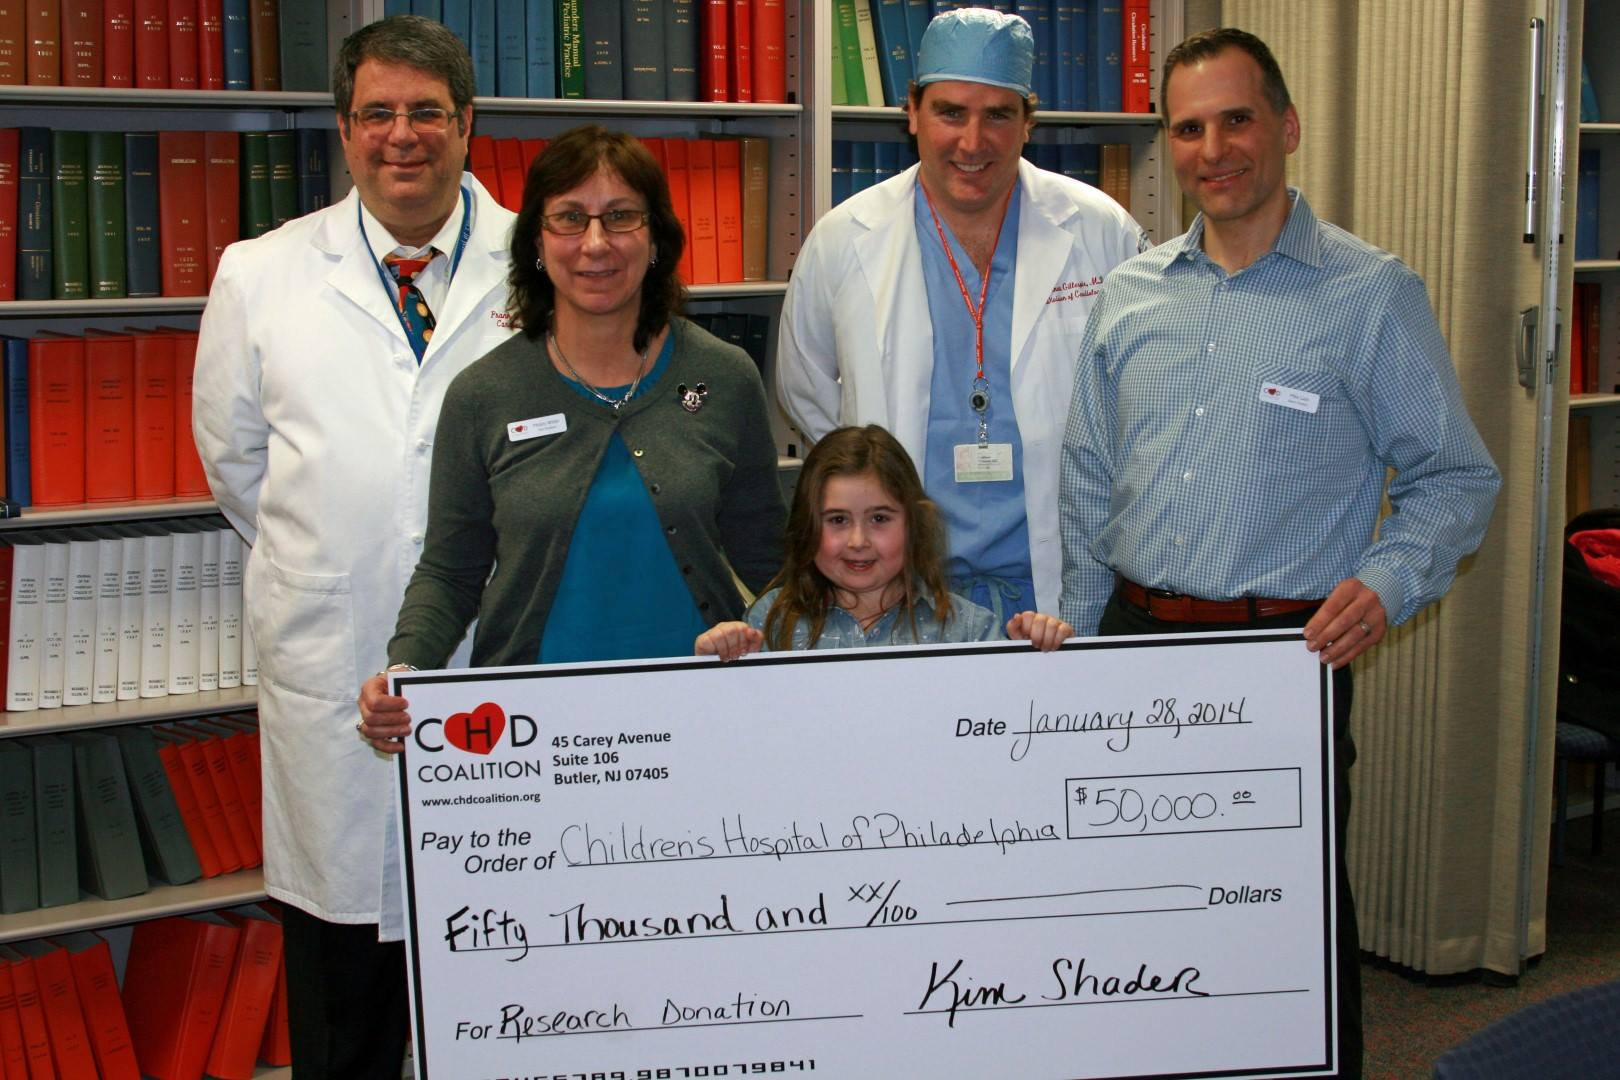 CHD Coalition Donates Over $50,000 for Lifesaving Research